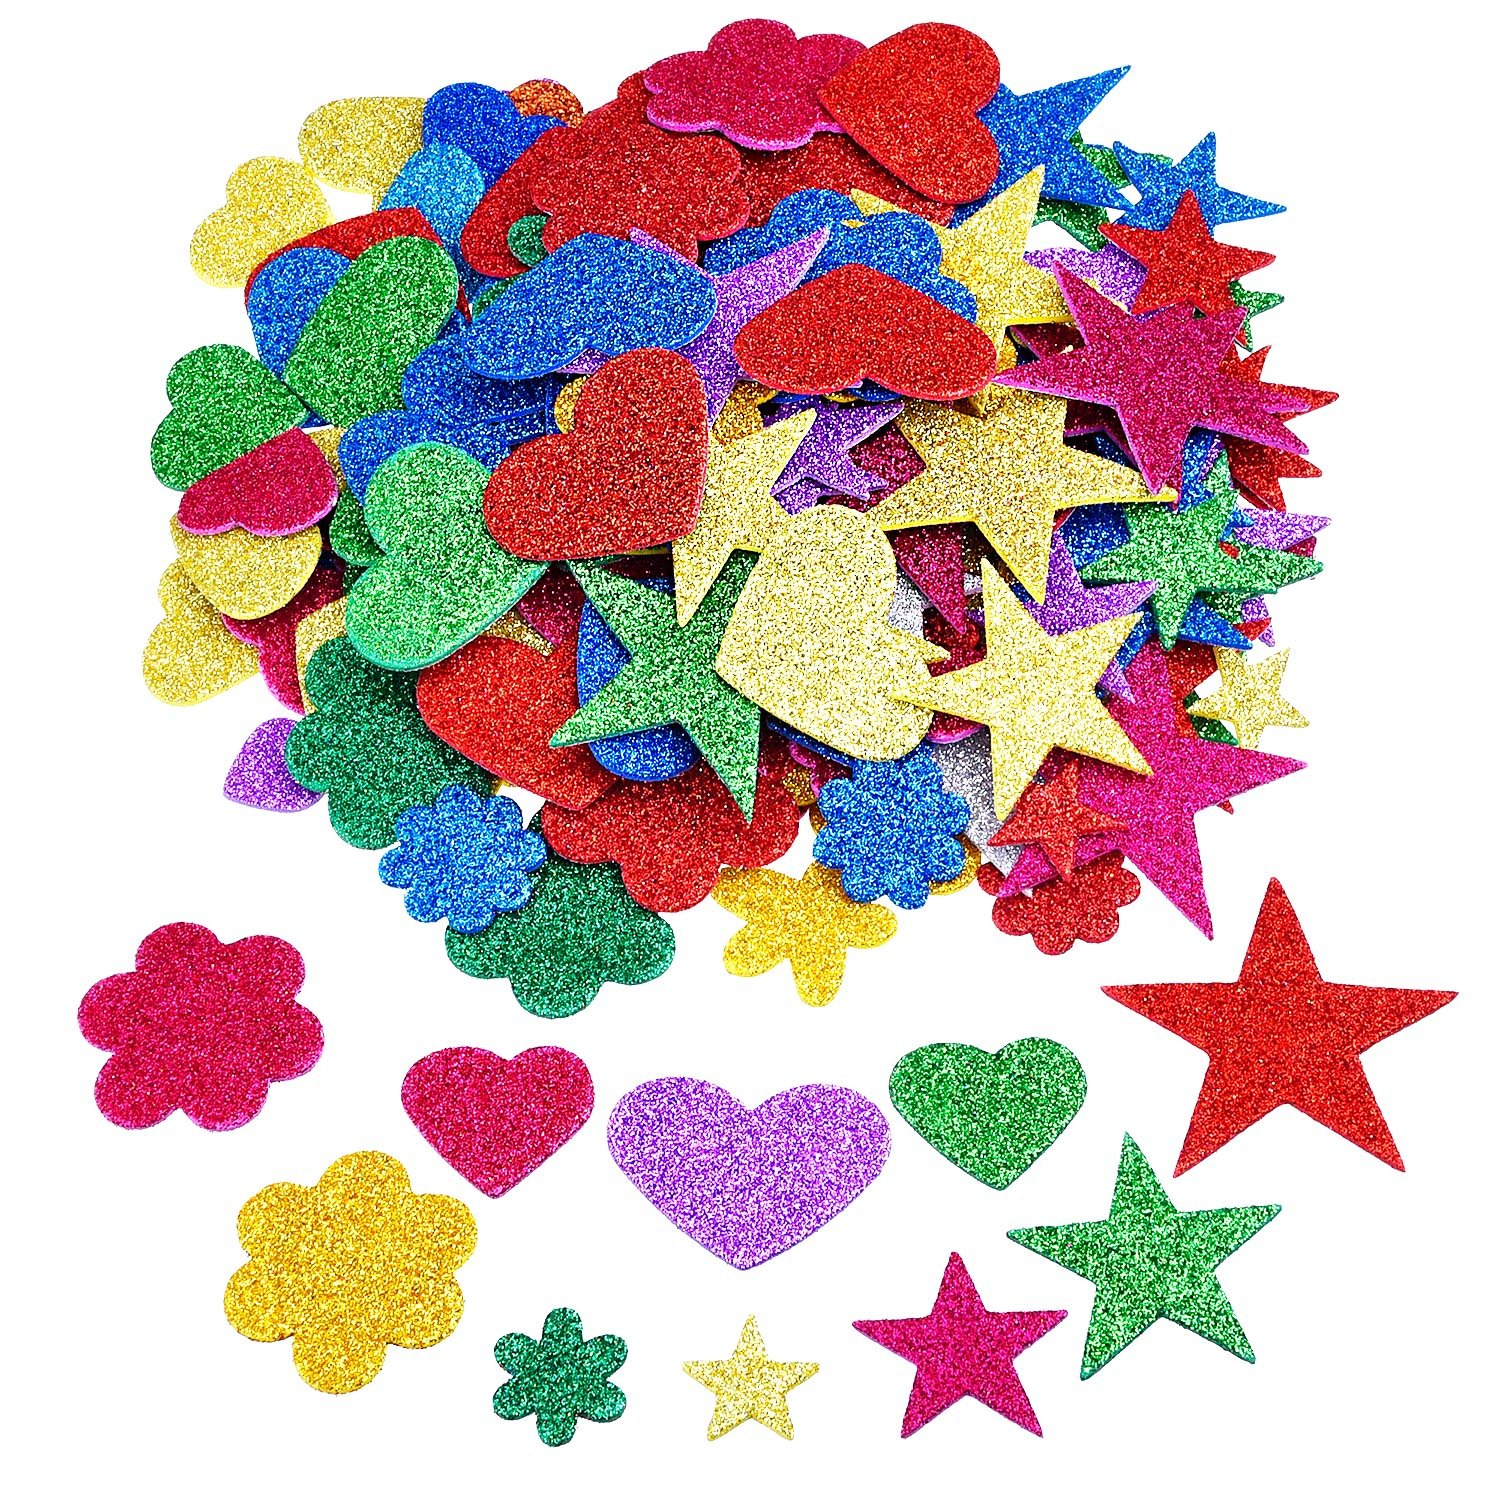 Outus 2.65 Ounce Foam Glitter Stickers Self-Adhesive Foam Stickers, Star, Mini Heart and Flower Shape